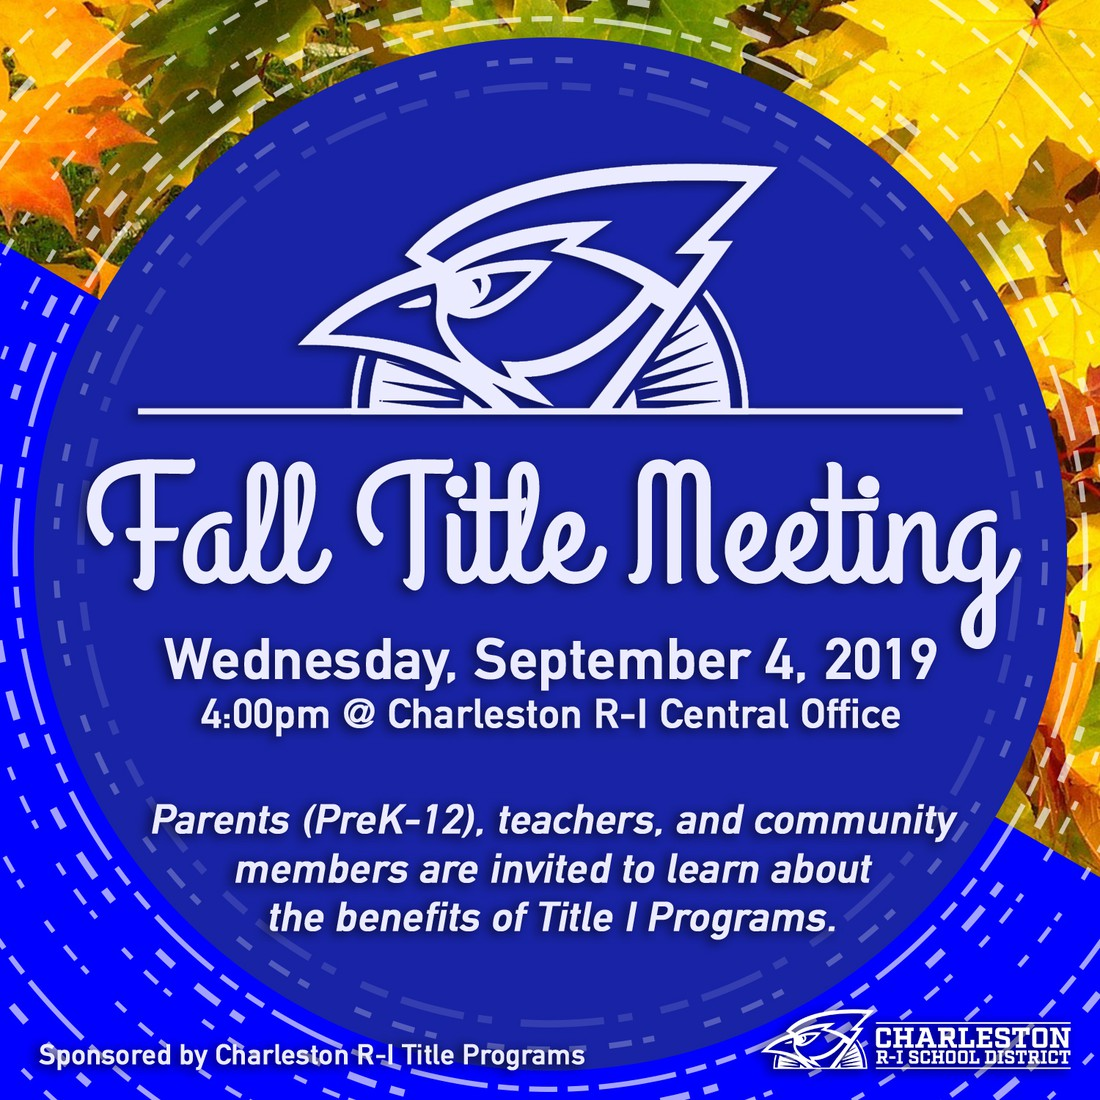 Fall Title Meeting, Wednesday, September 4, 2019, 4:00pm at Charleston R-I Central Office